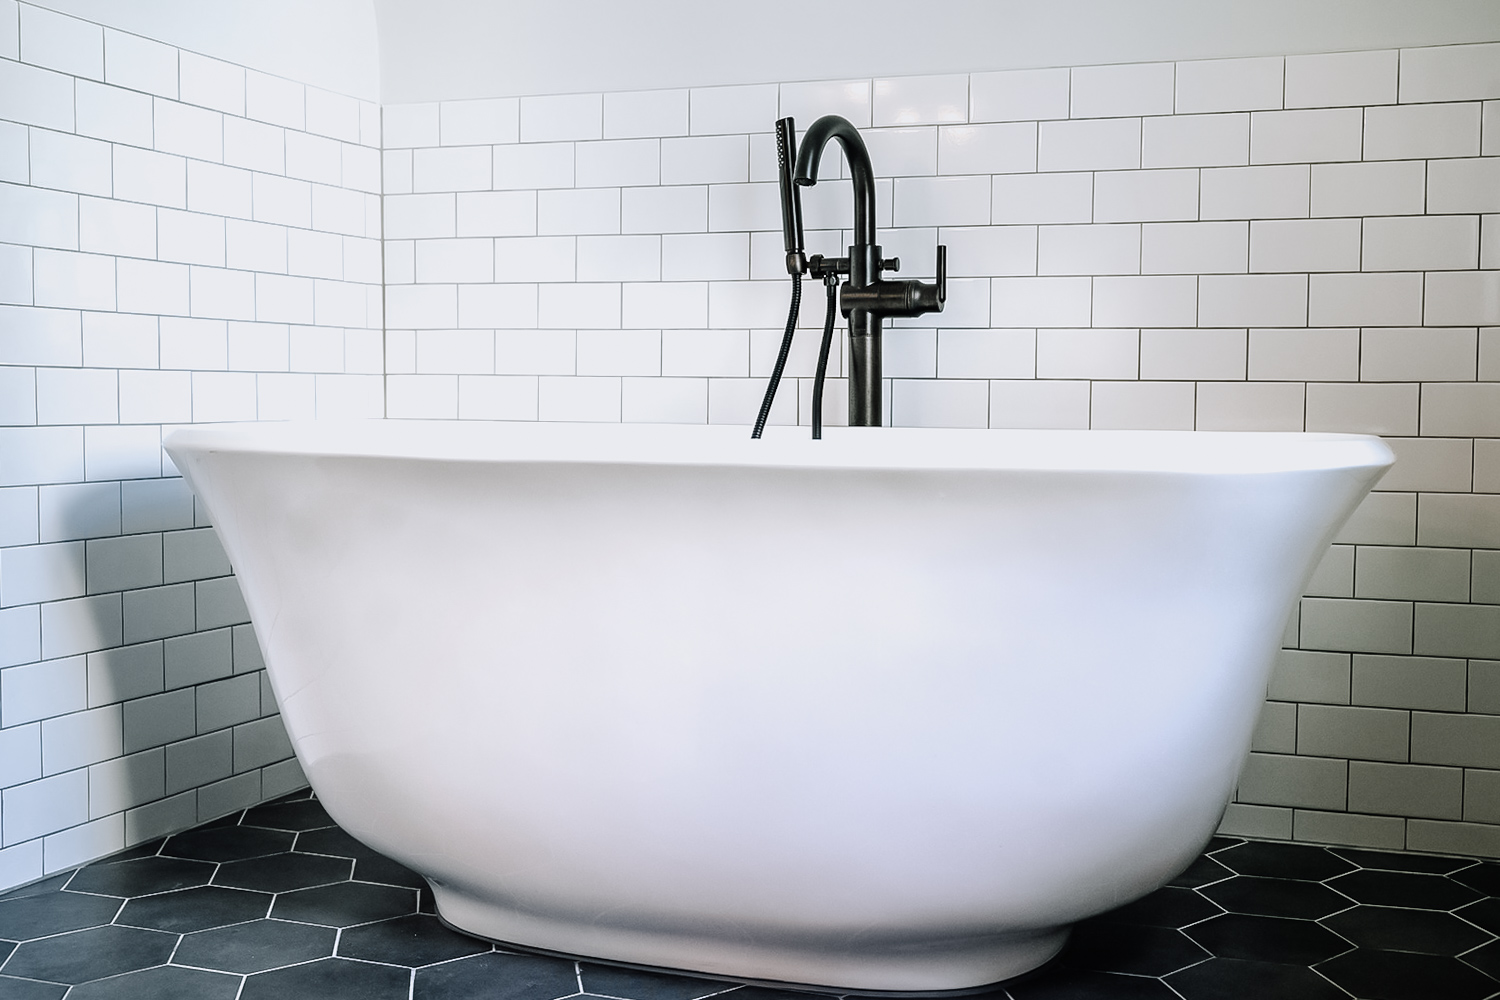 - Just when you thought this renovated bathroom could not get any more spa-like. This hall bathroom was remodeled to include the most perfect spot for a stand-alone tub. The curved shape of the bath tub adds a nice contrast to the geometric angles of the floor and wall tile.